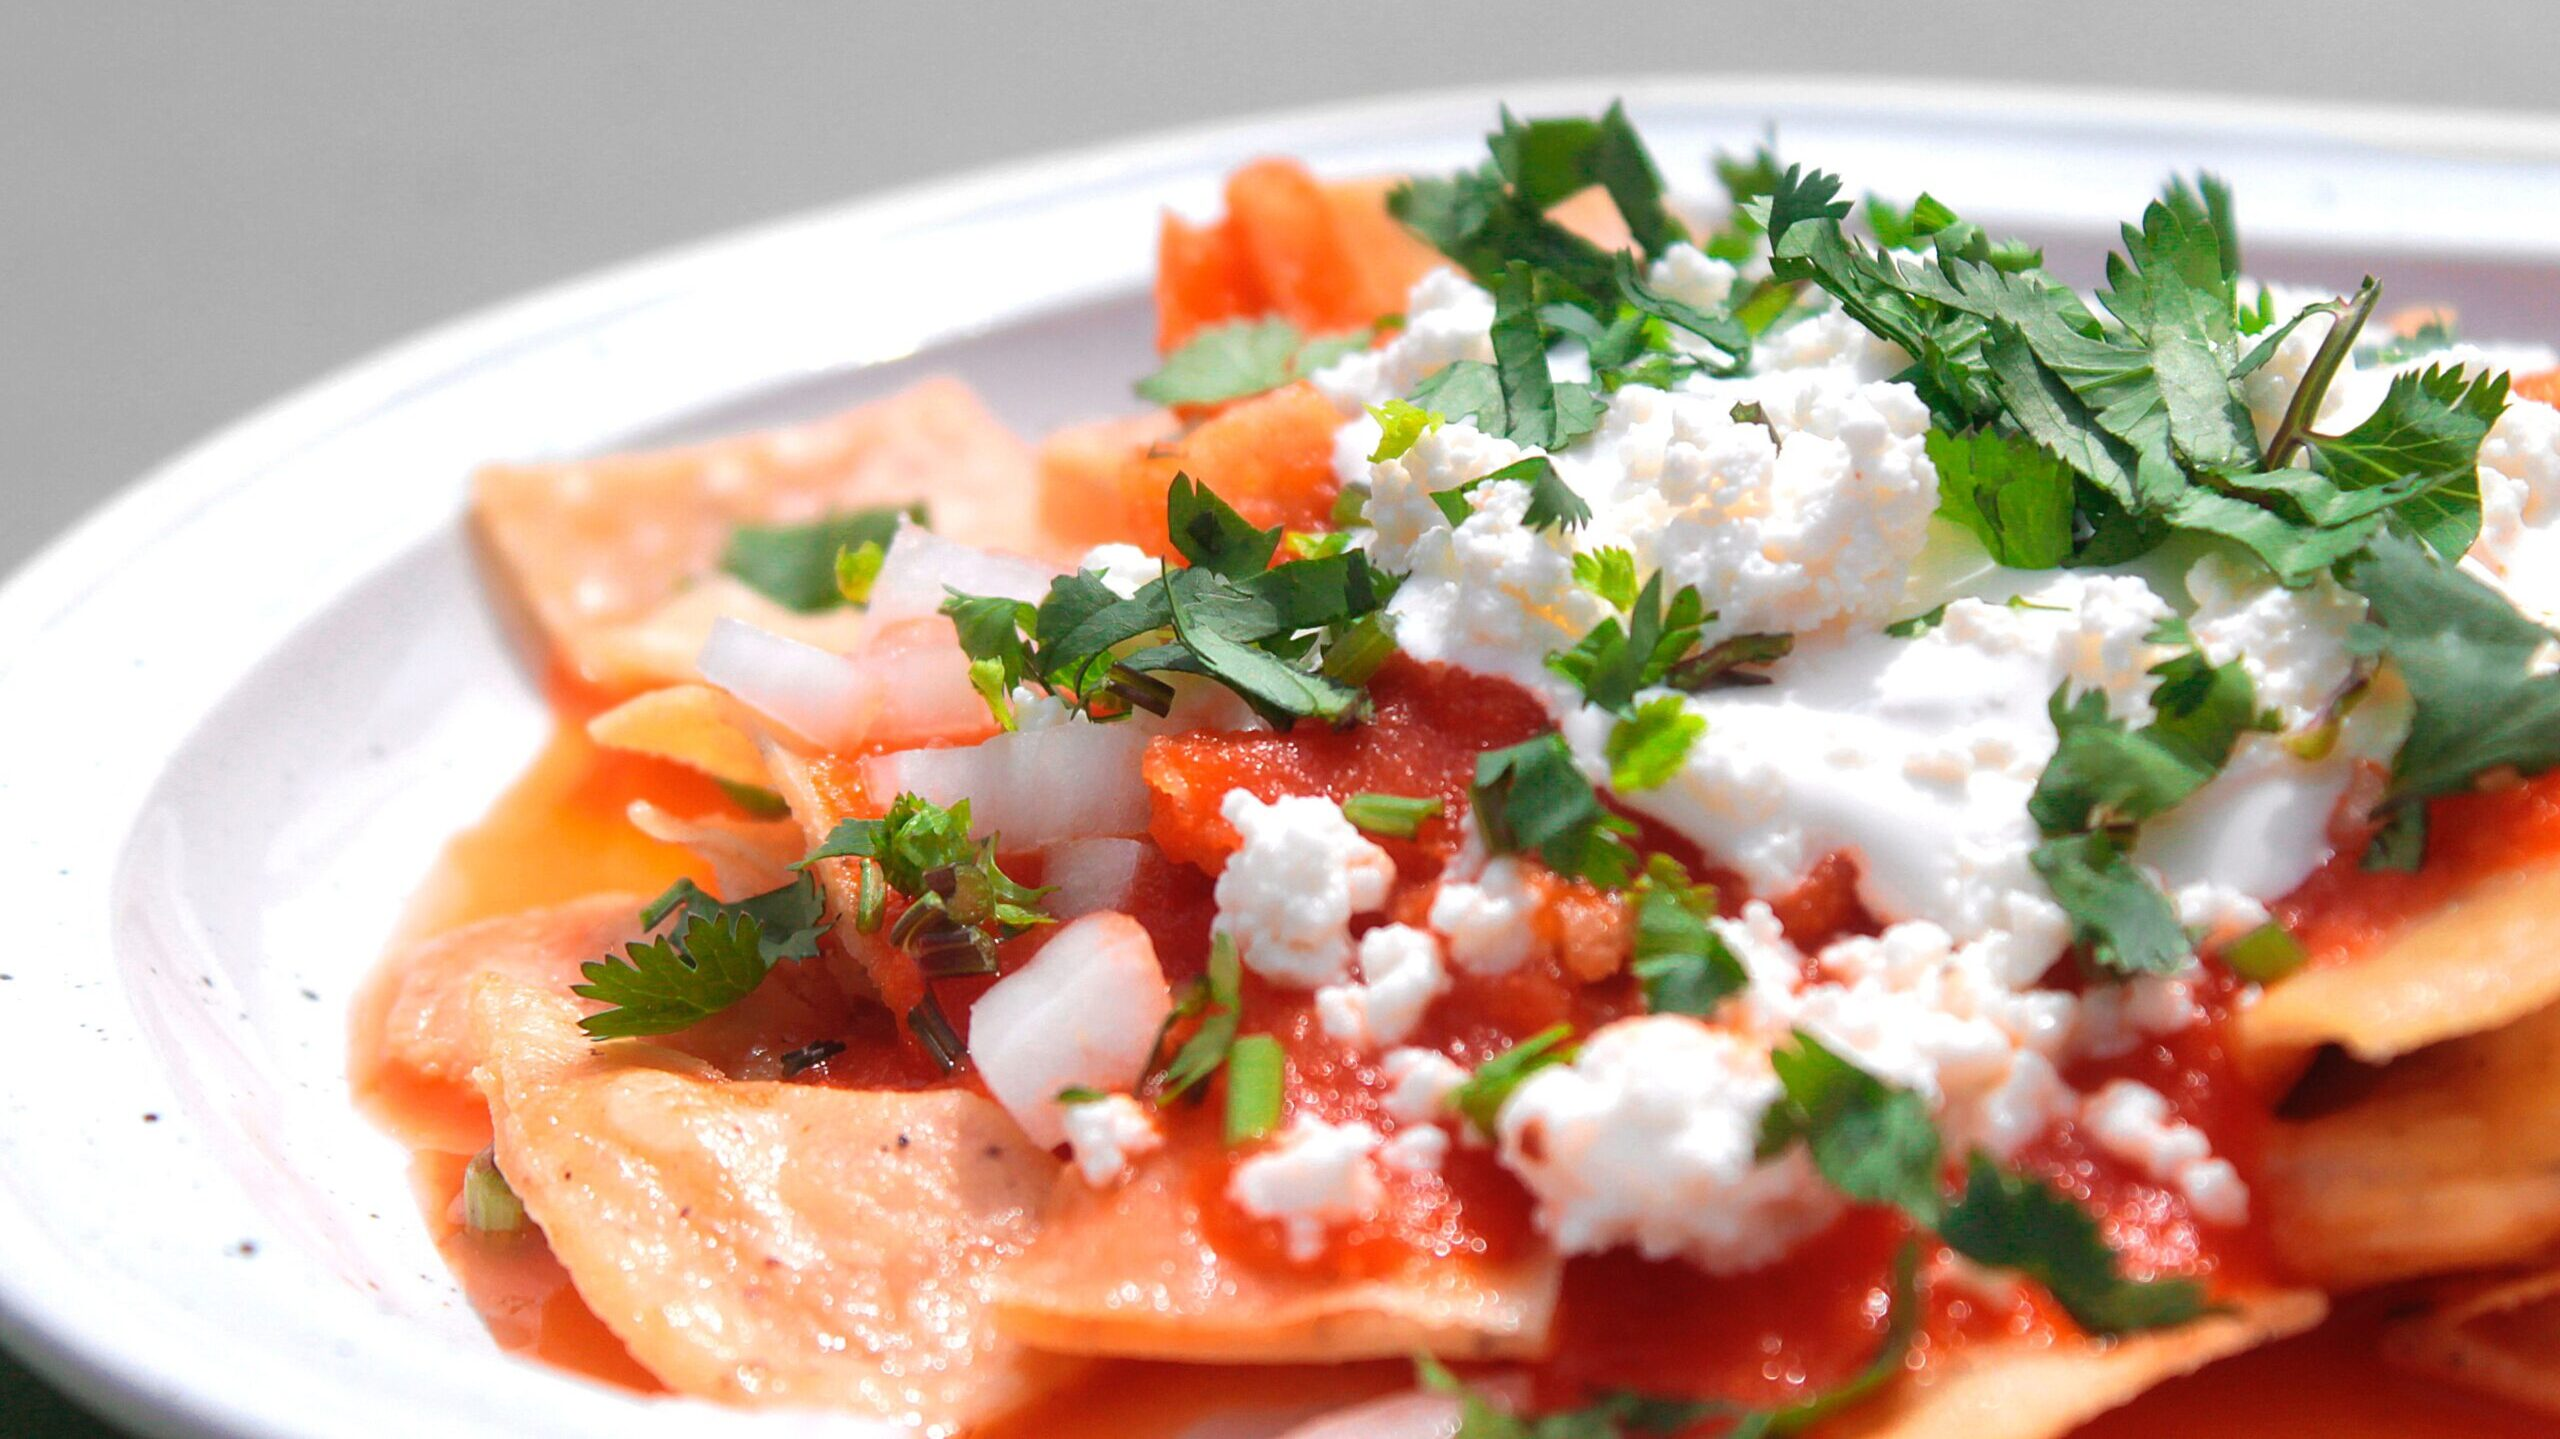 Seasoned To Perfection: Enjoy Chilaquiles Before The Party Is Over